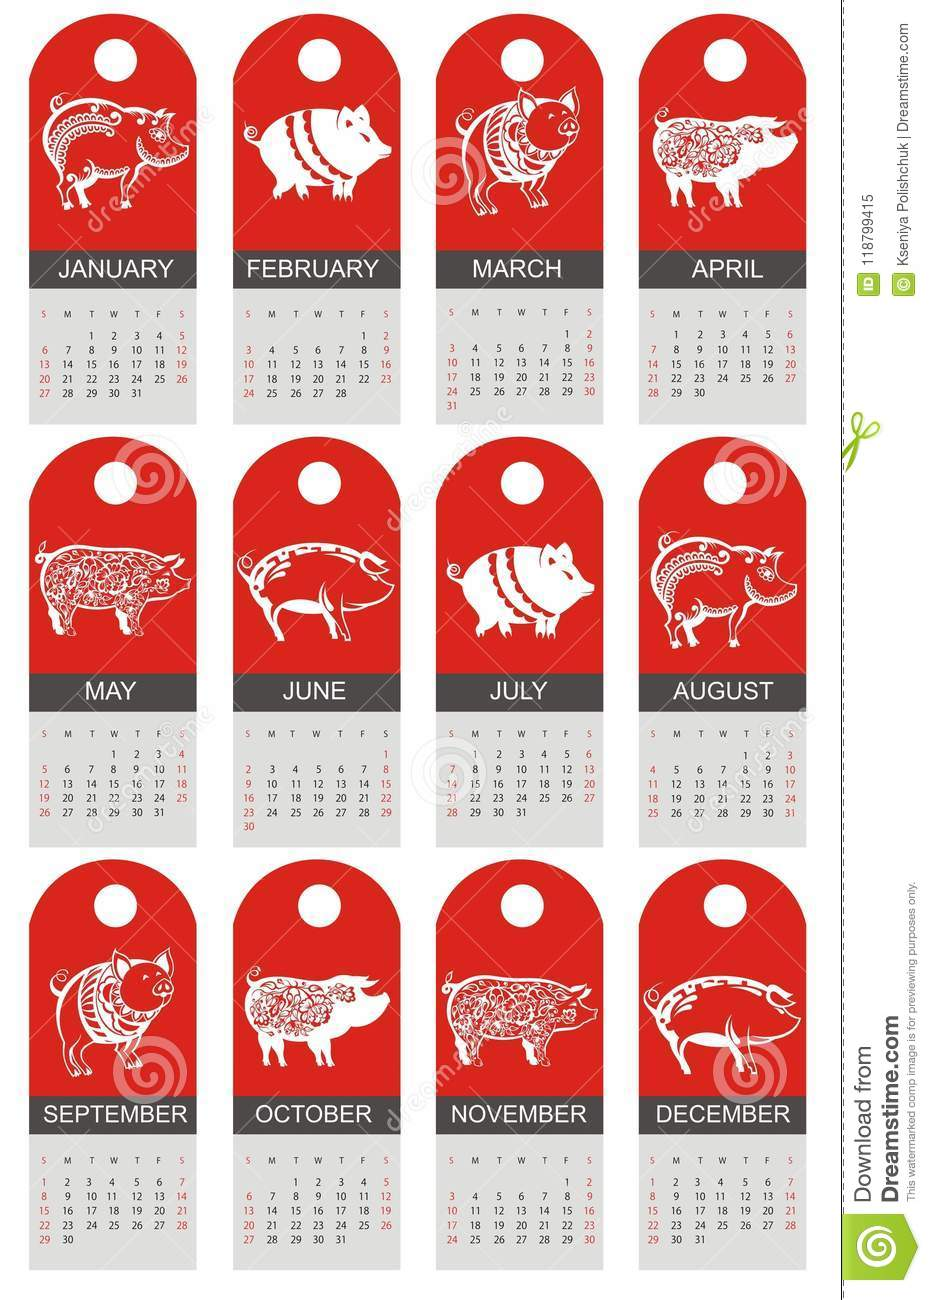 New Zodiac Signs 2019 Happy Chinese New Year 2019 Zodiac Sign Year Of The Pig Stock